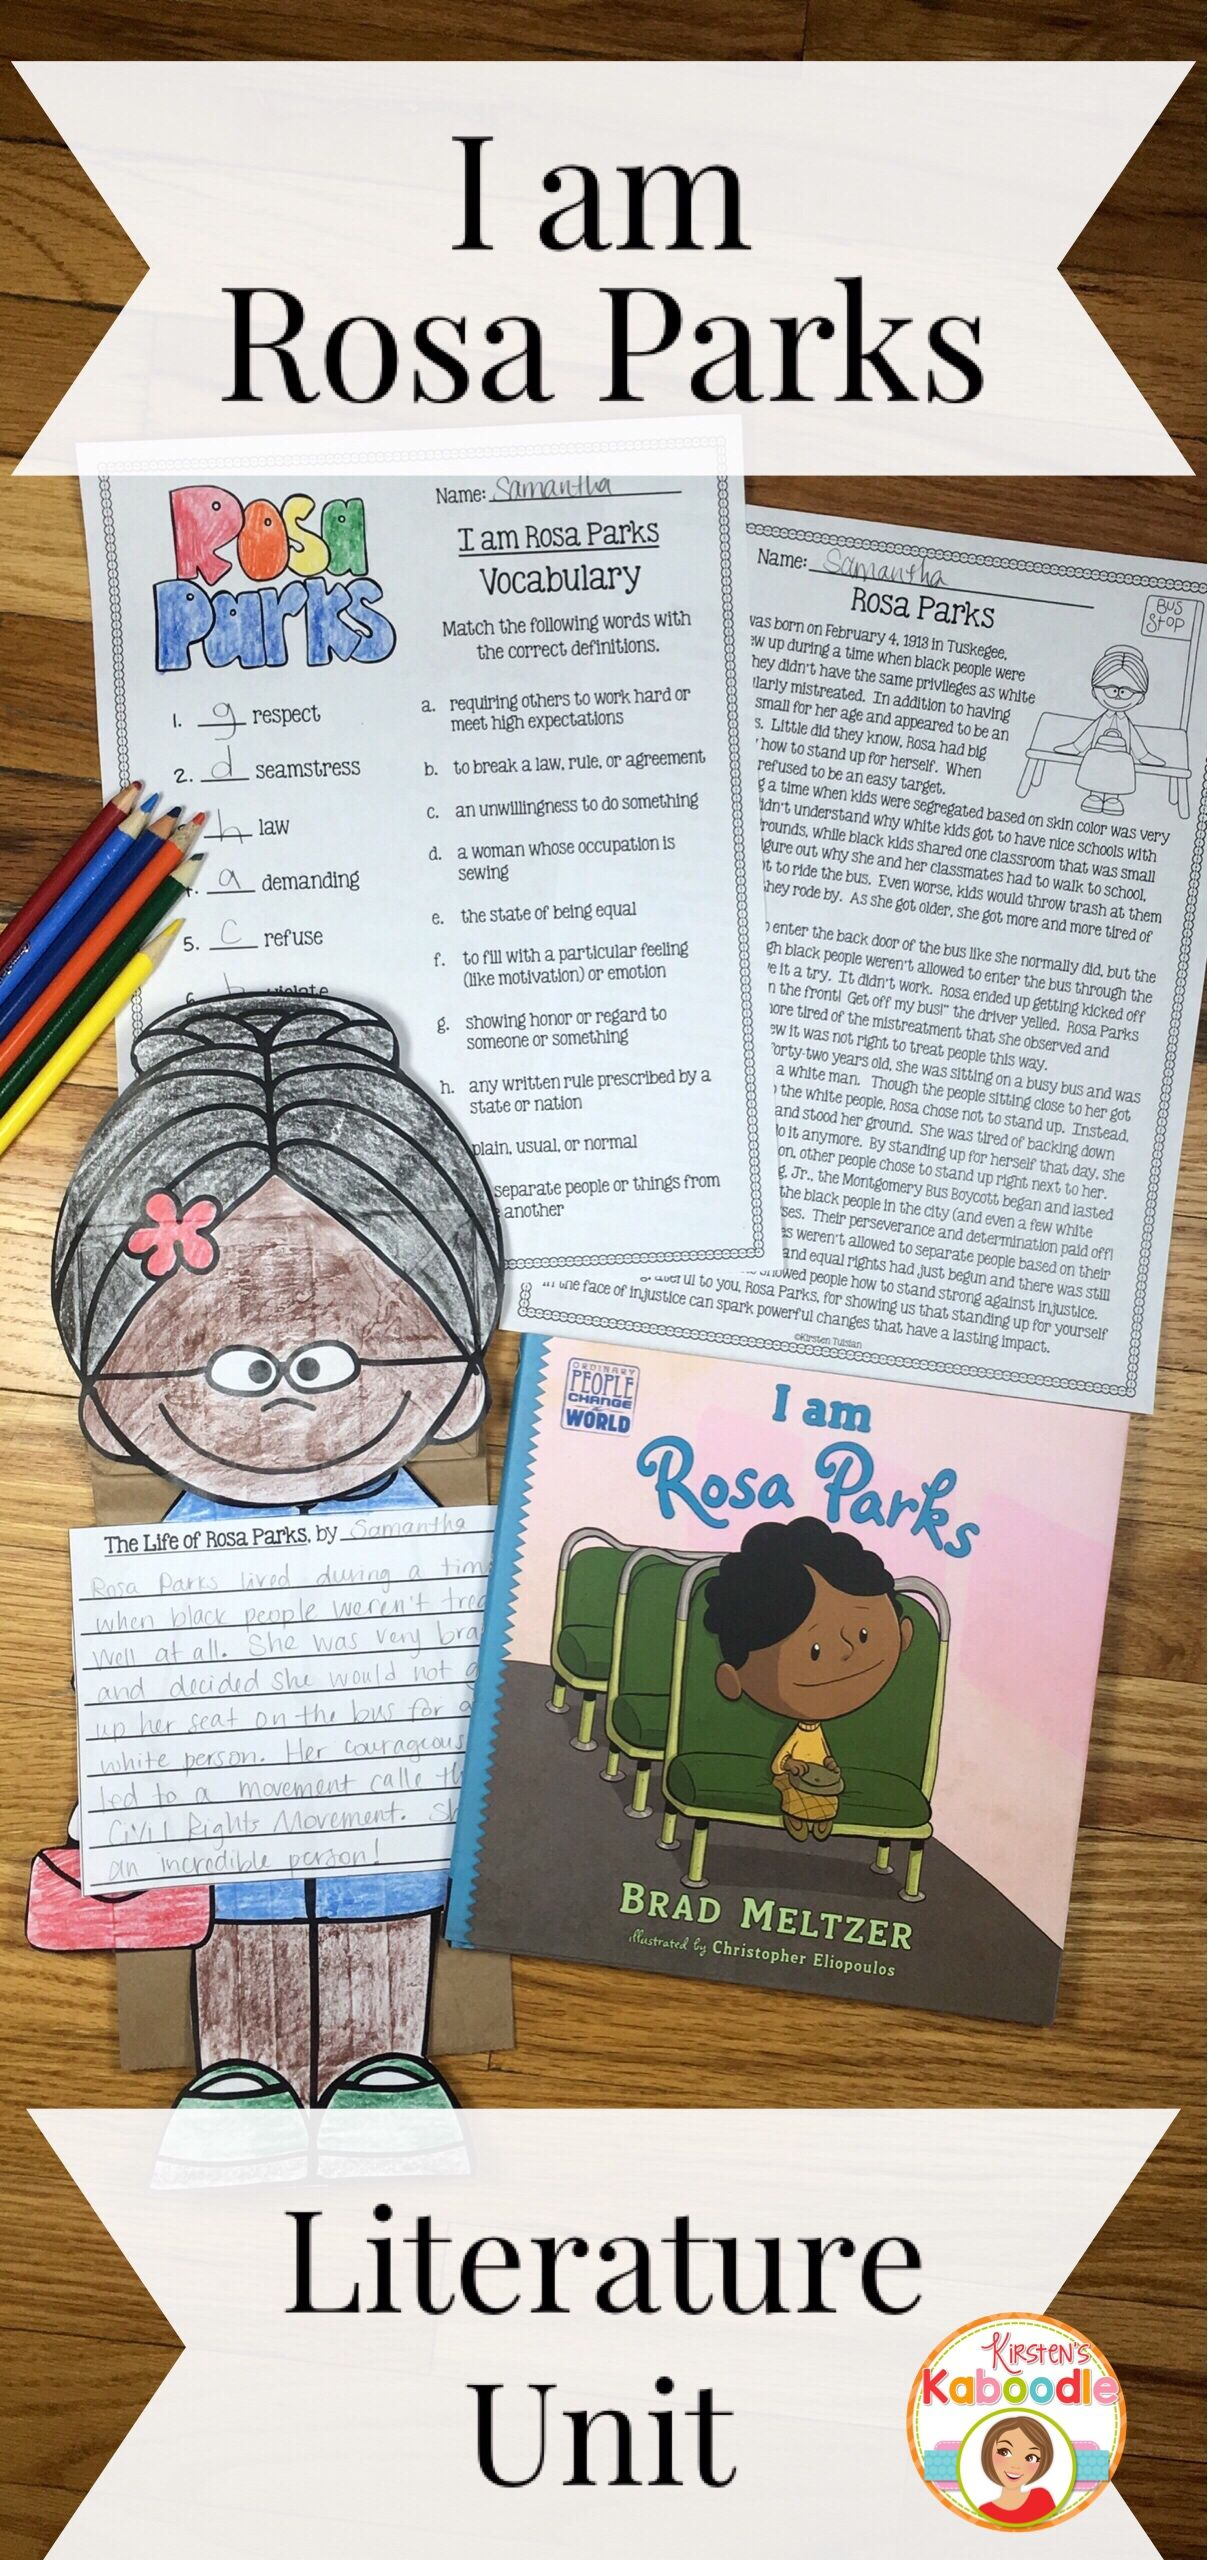 I Am Rosa Parks Is A Fantastic New Biography By Brad Meltzer This Easy To Use Literature Companion Requires No P Rosa Parks Rosa Parks Activities Brad Meltzer